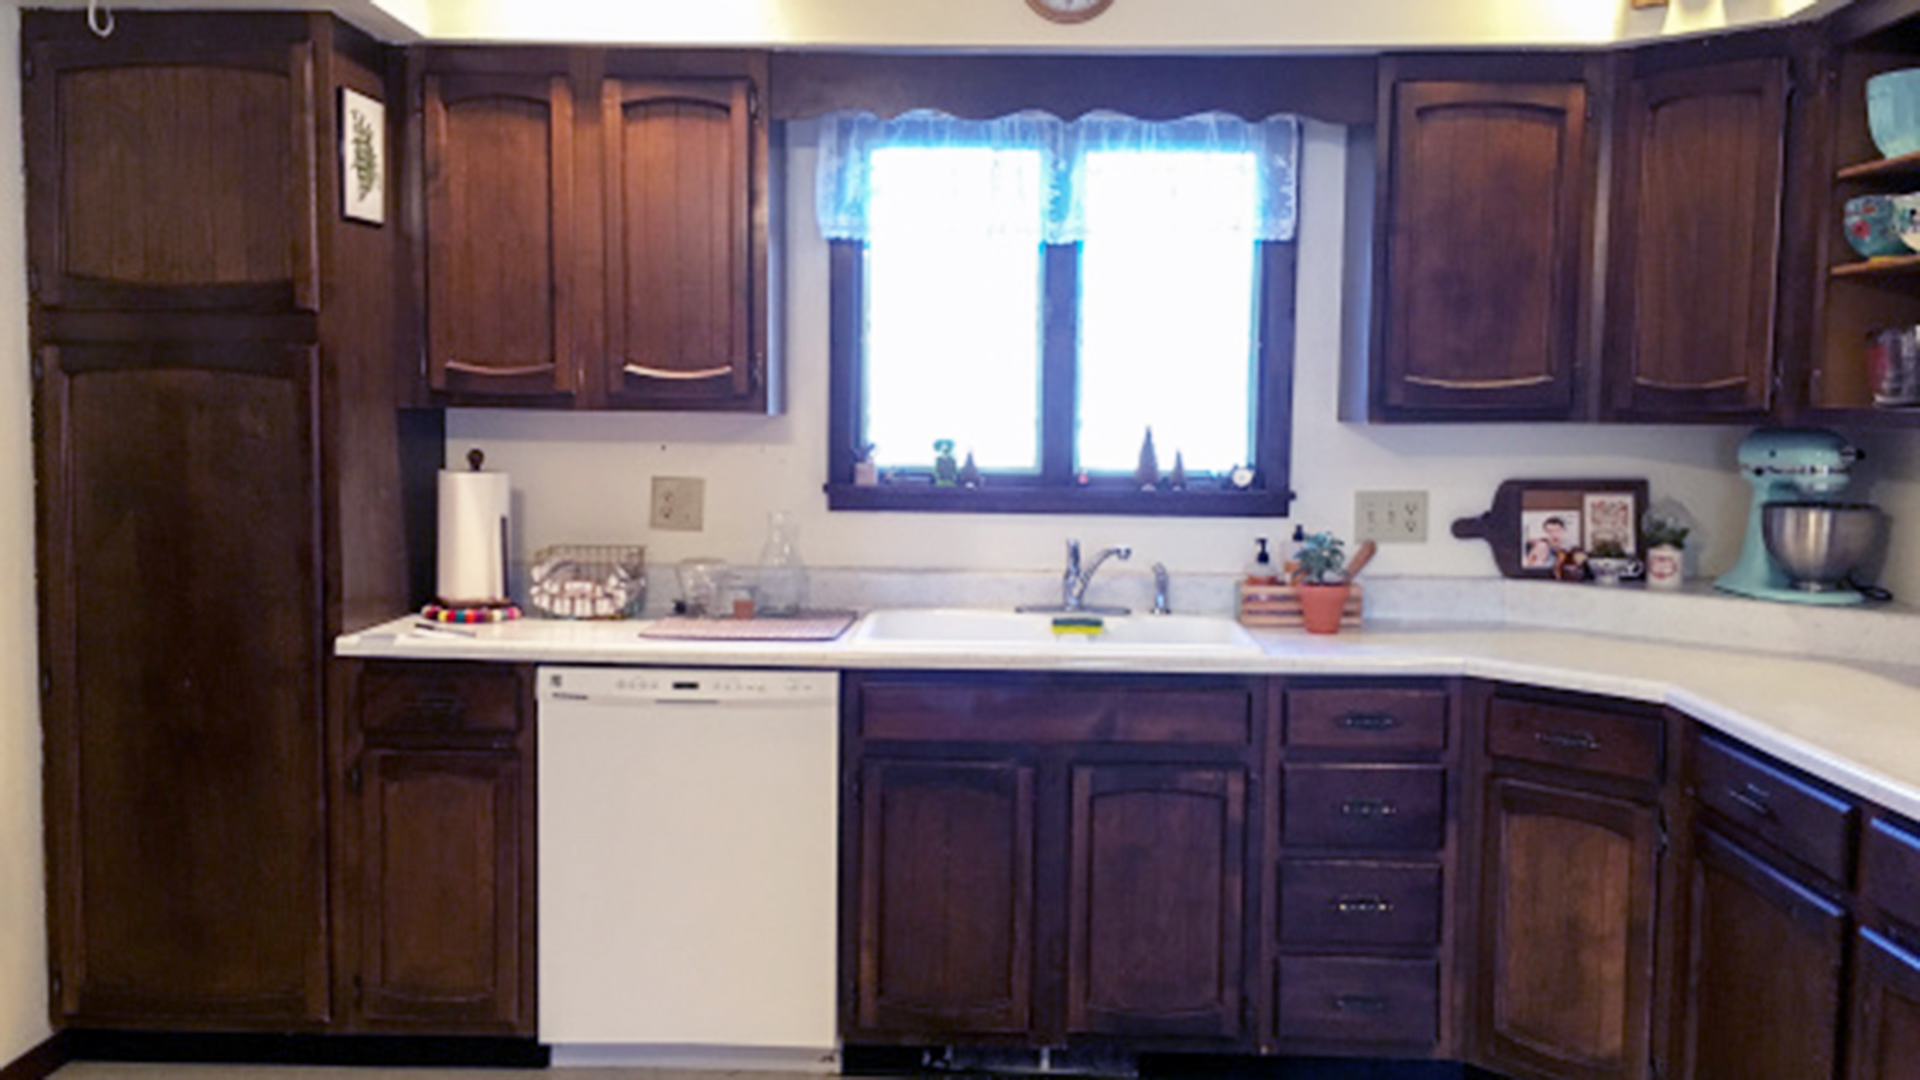 Can You Use Chalk Paint For Kitchen Cabinets Kitchen Makeover For Less Than $250 - Today.com